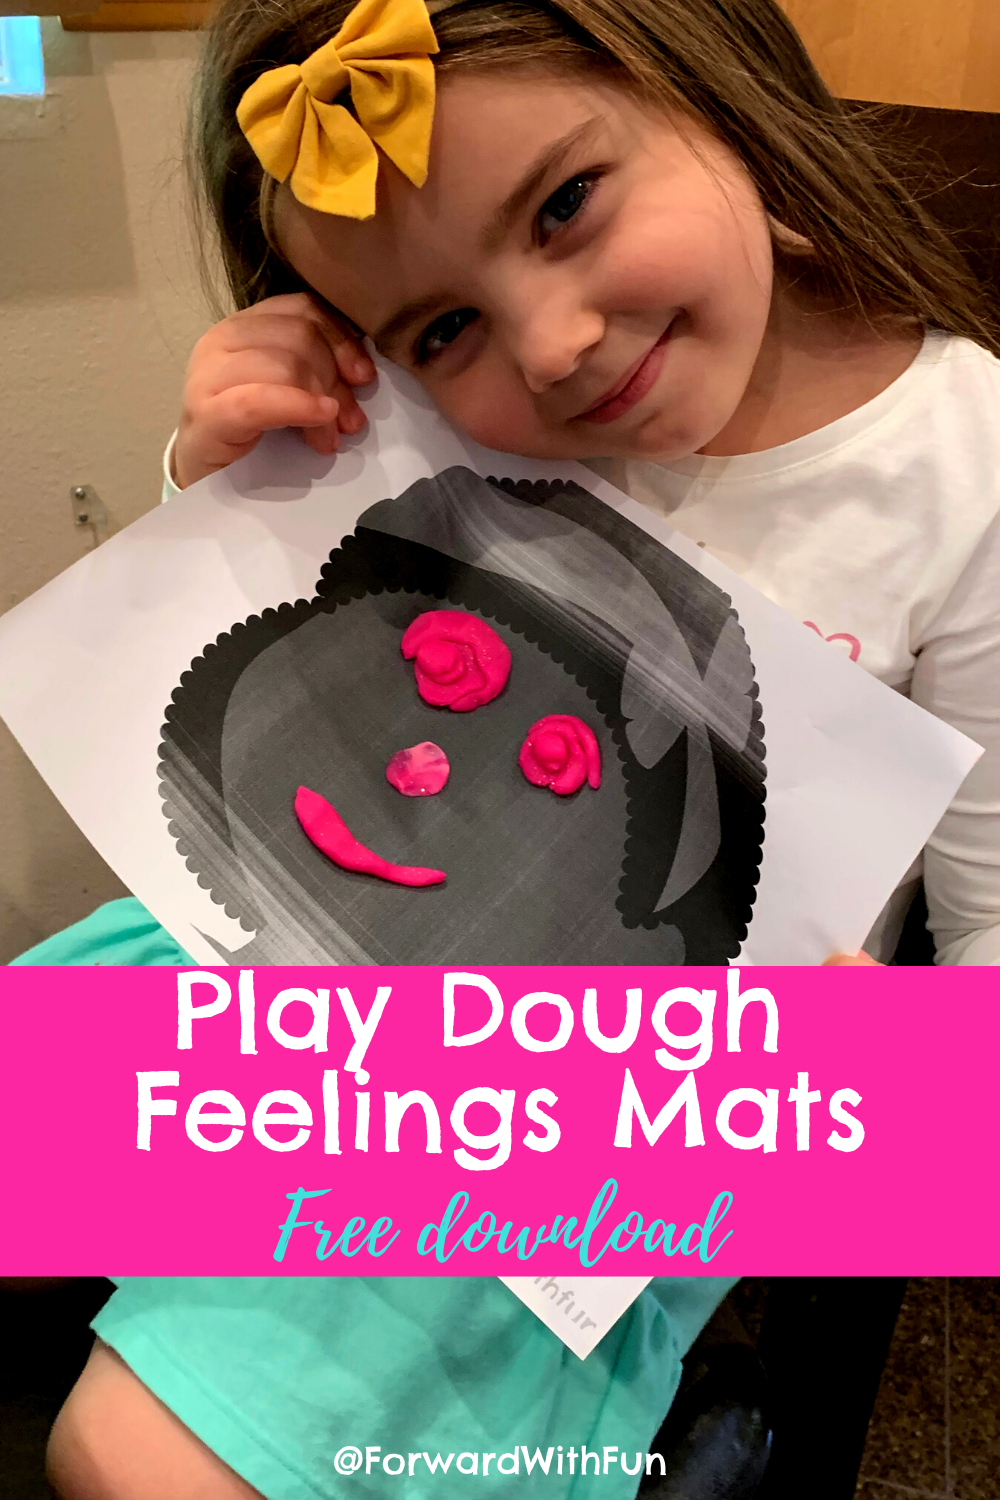 Build your child's understanding and recognition of feelings by creating Play dough faces together.